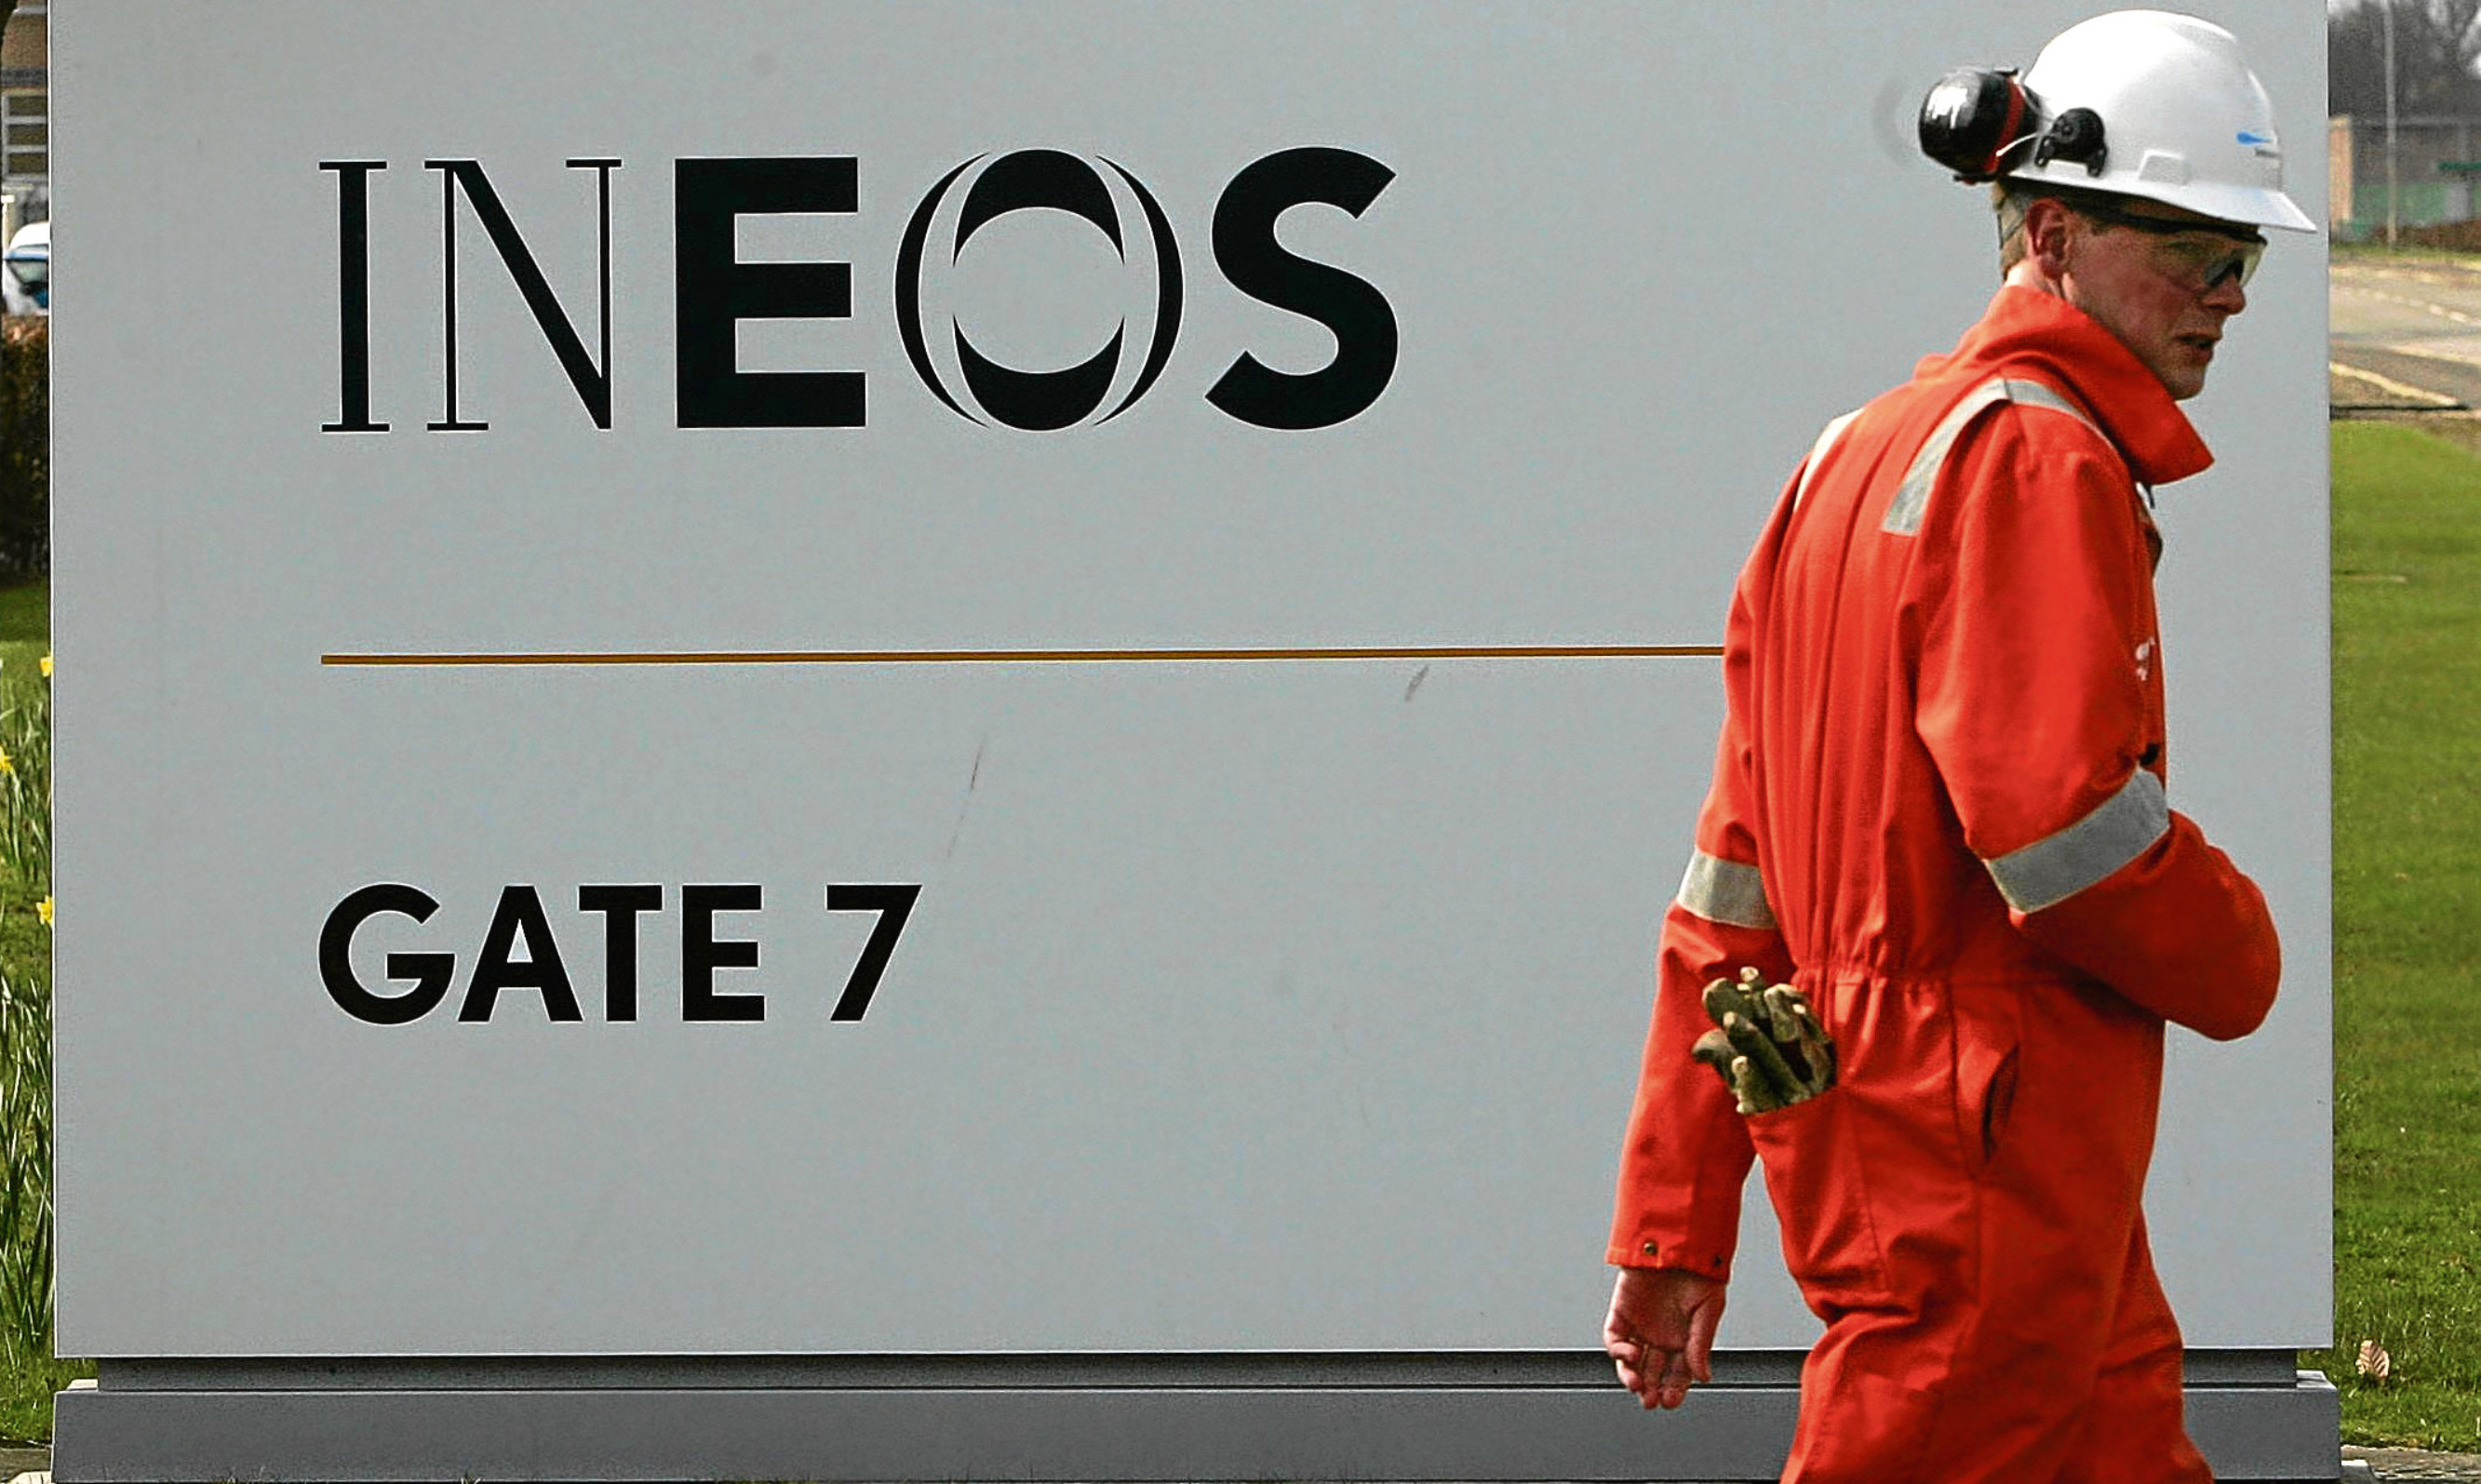 Ineos Grangemouth is the largest industrial site in Scotland